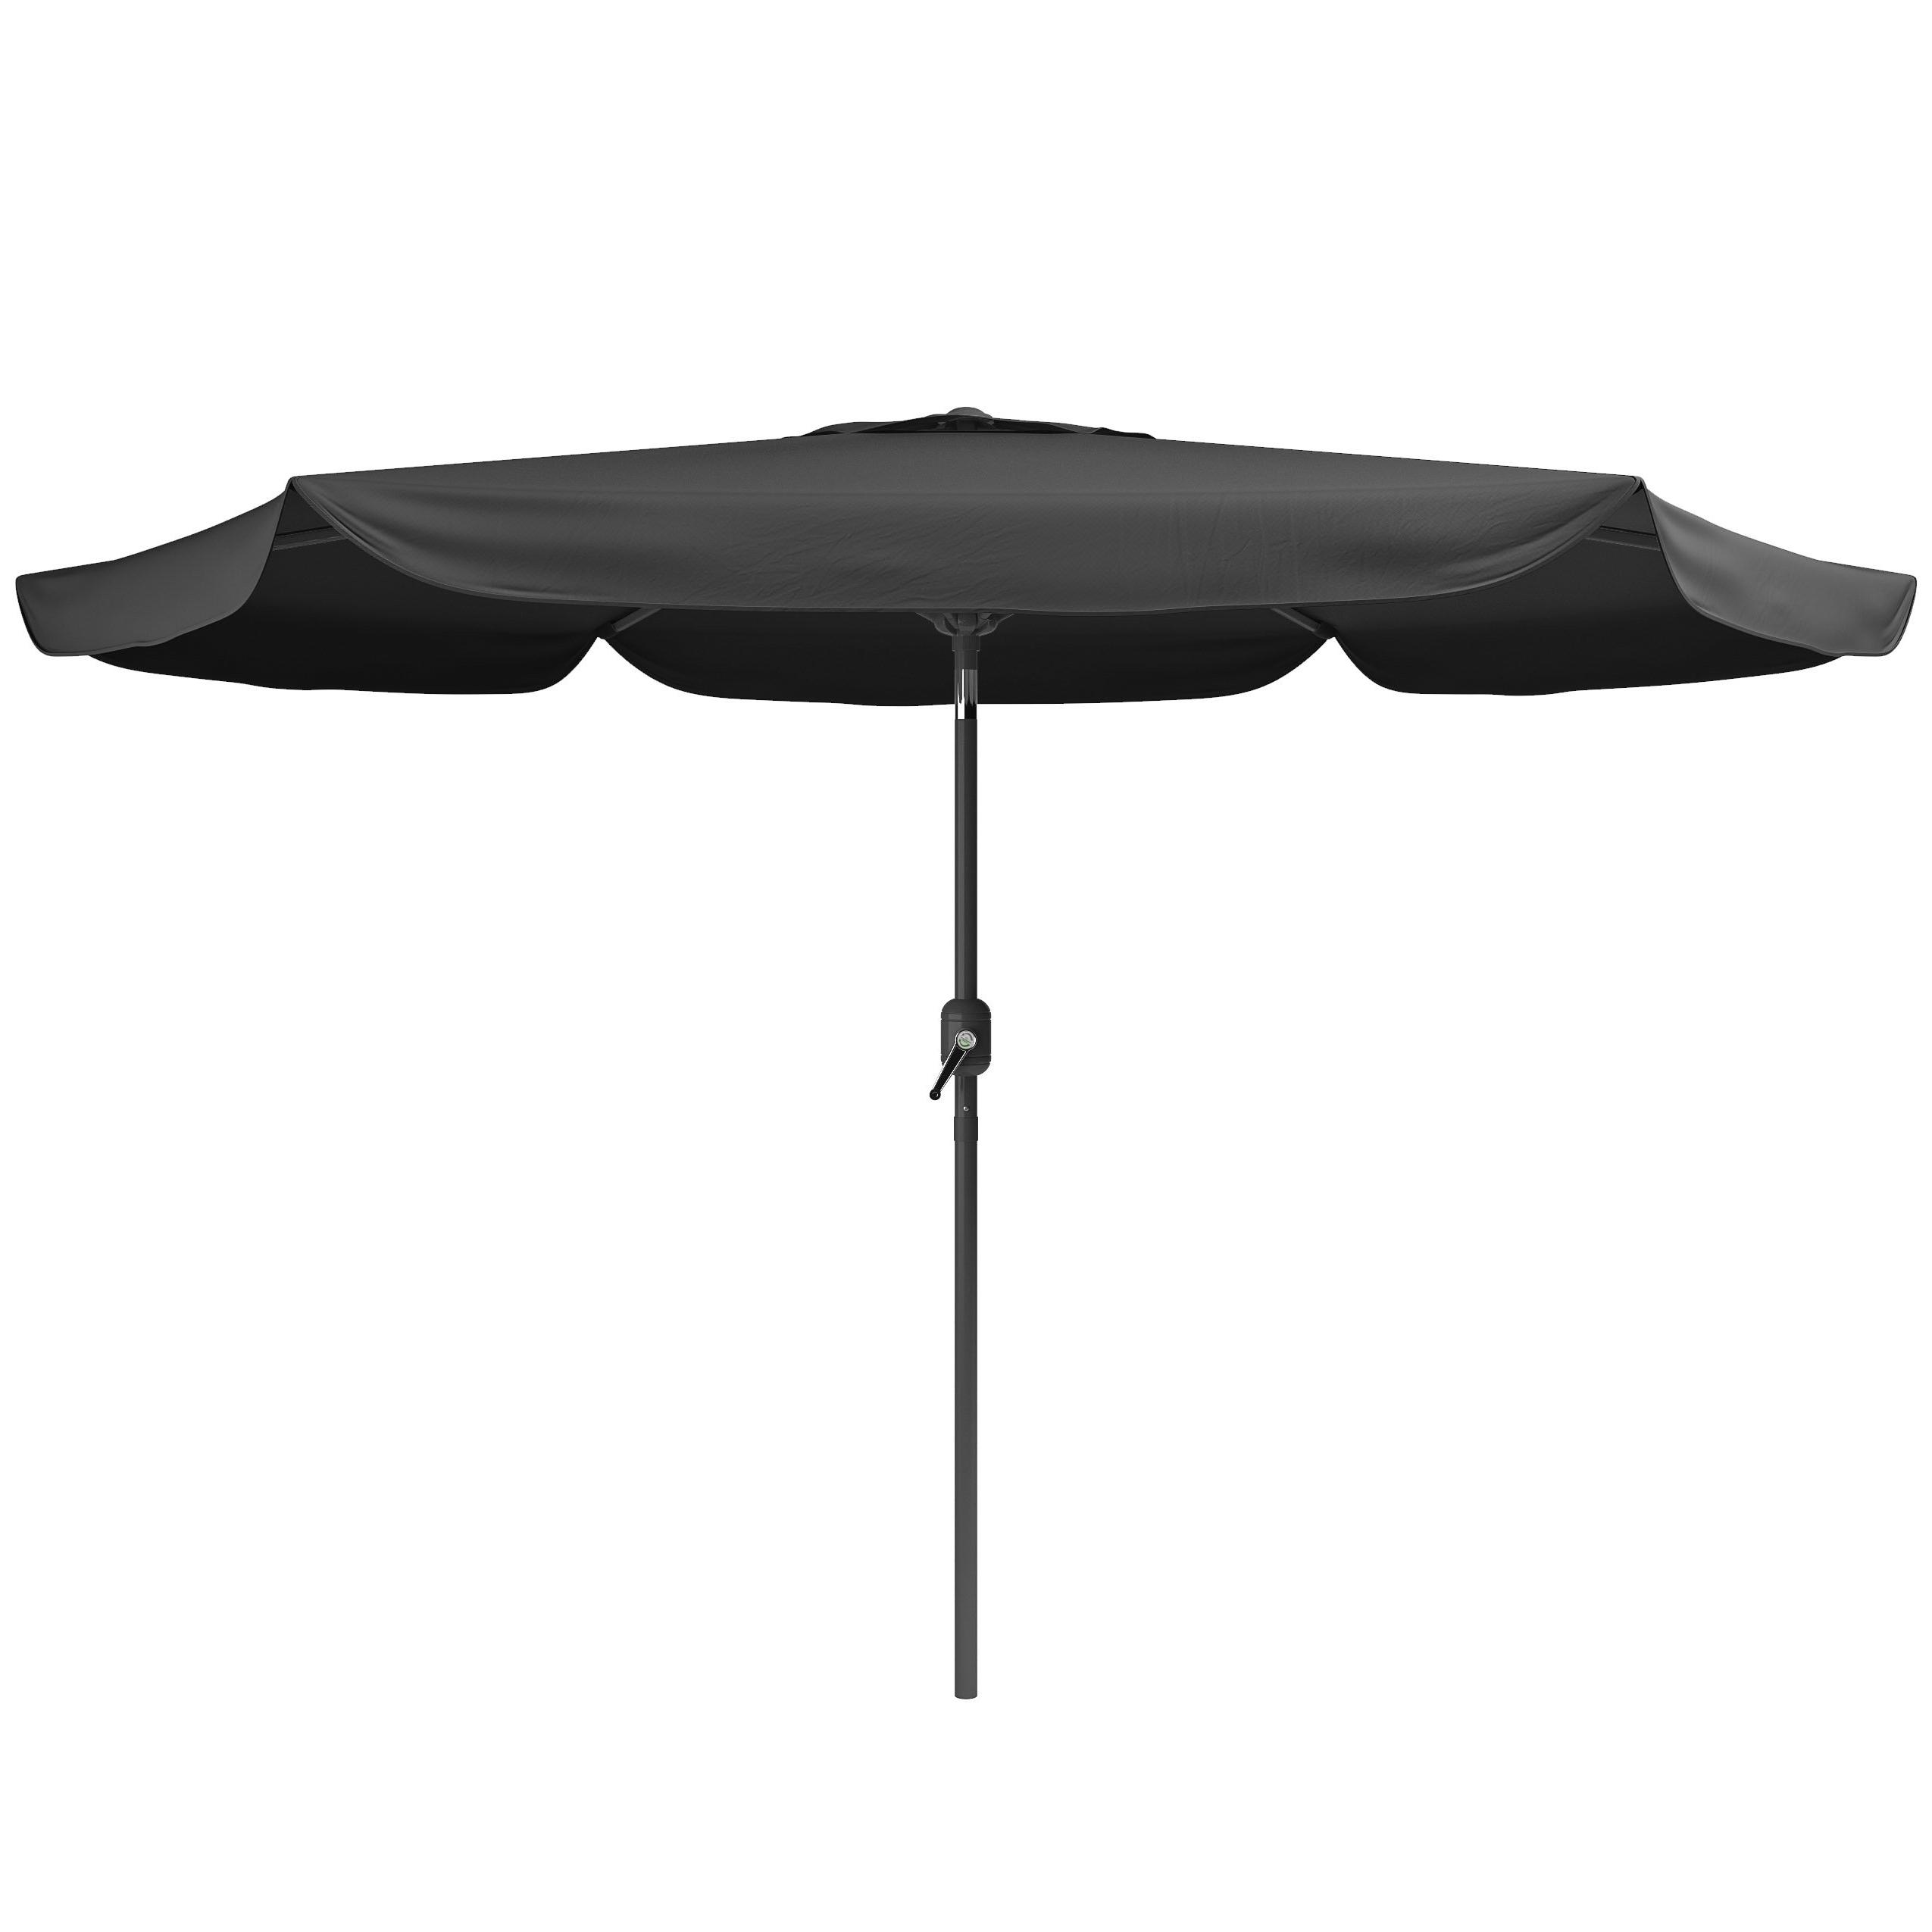 Dcor Design Corliving 10' Market Umbrella & Reviews (View 4 of 20)